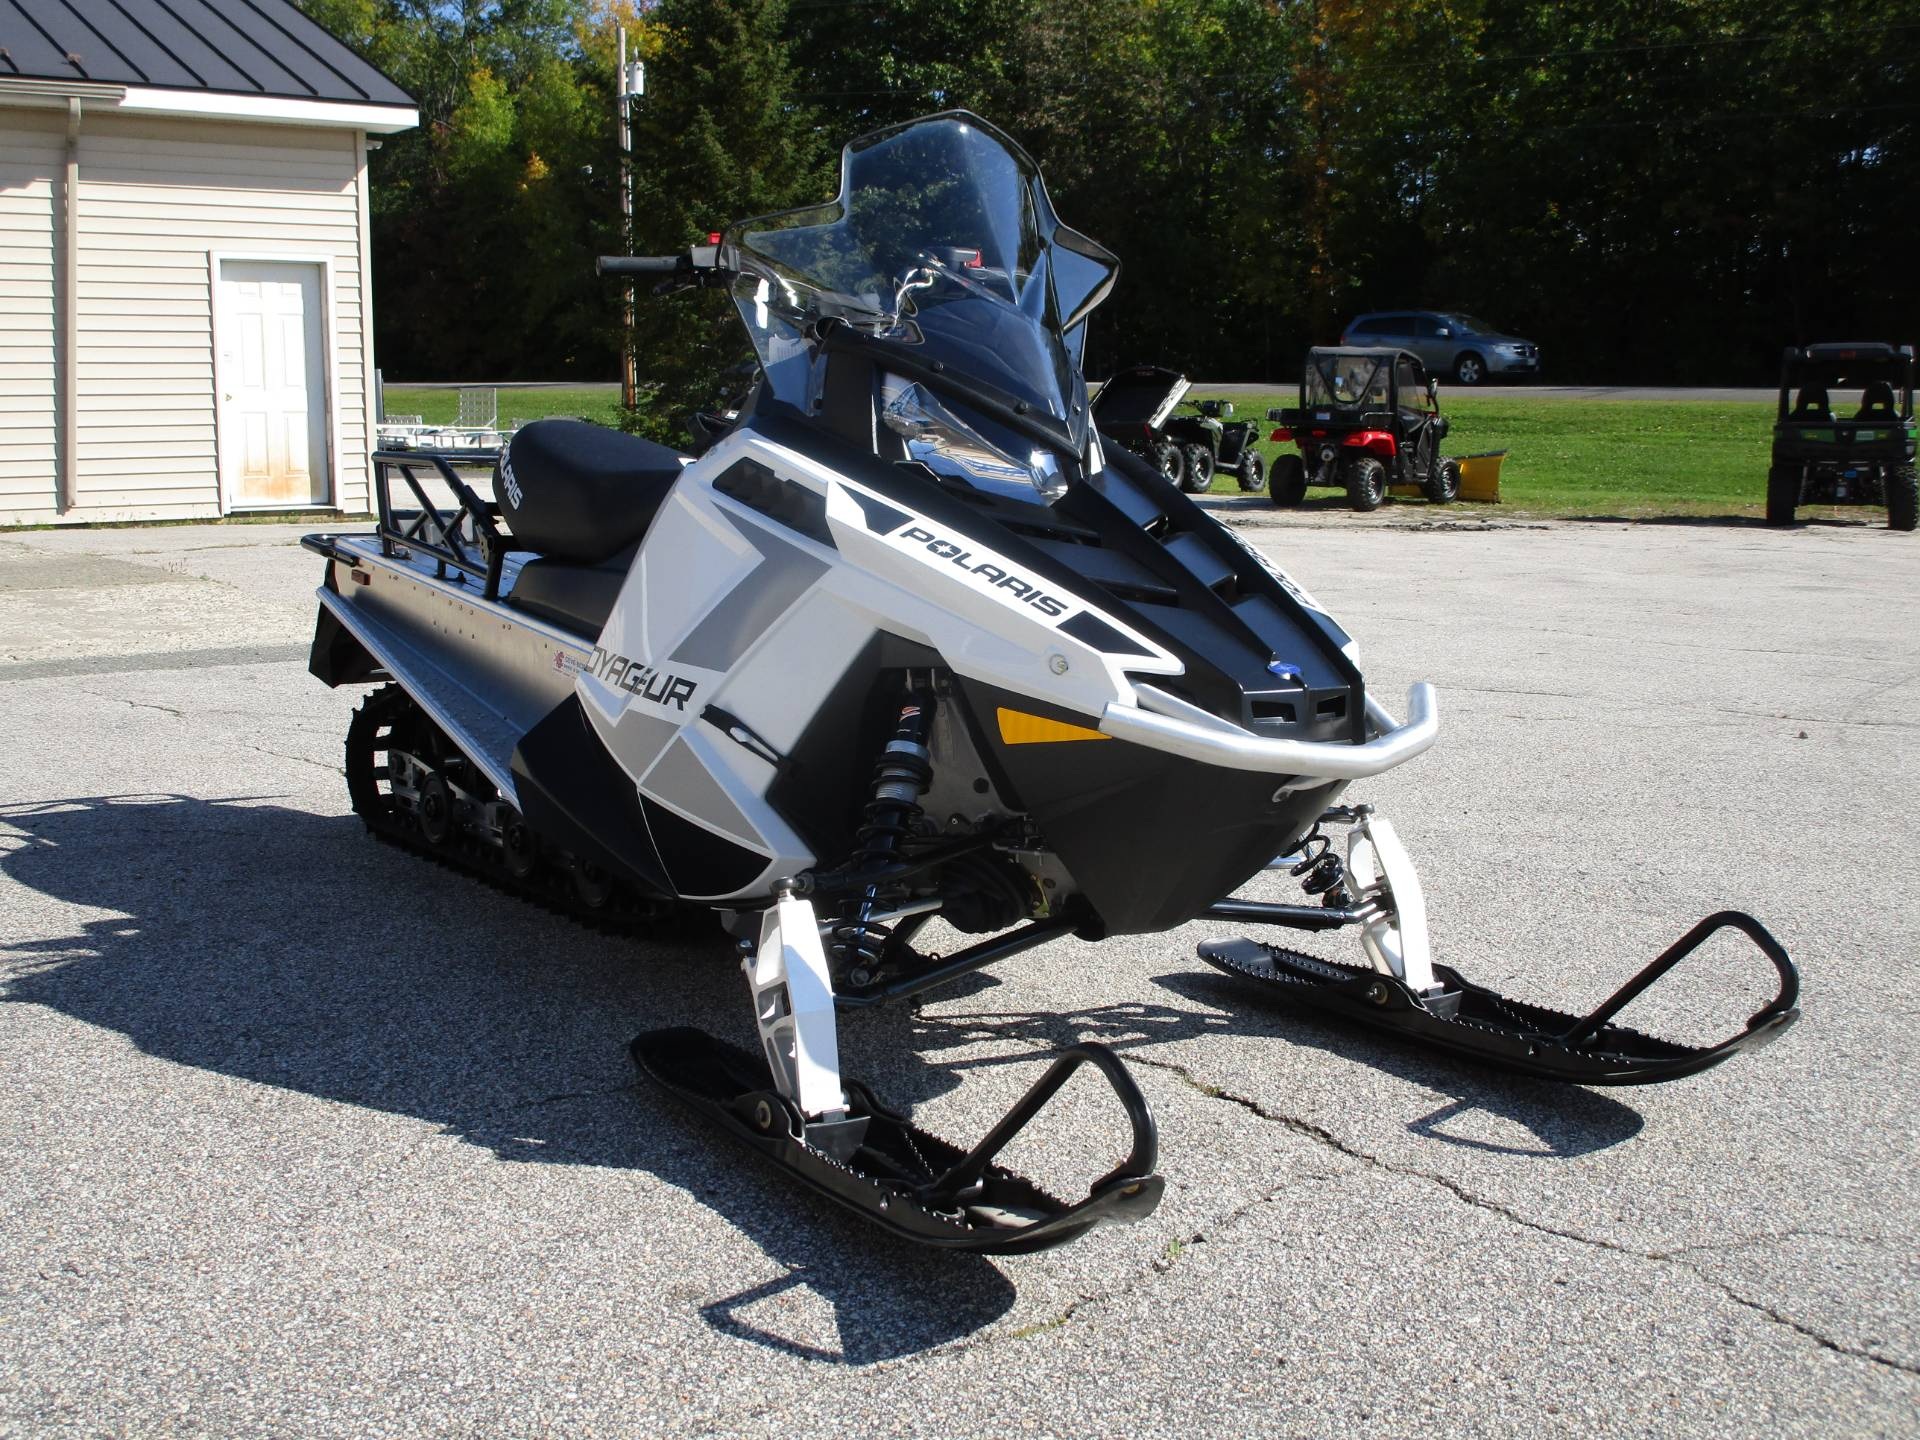 2020 Polaris 550 Voyageur 144 ES in Newport, Maine - Photo 2